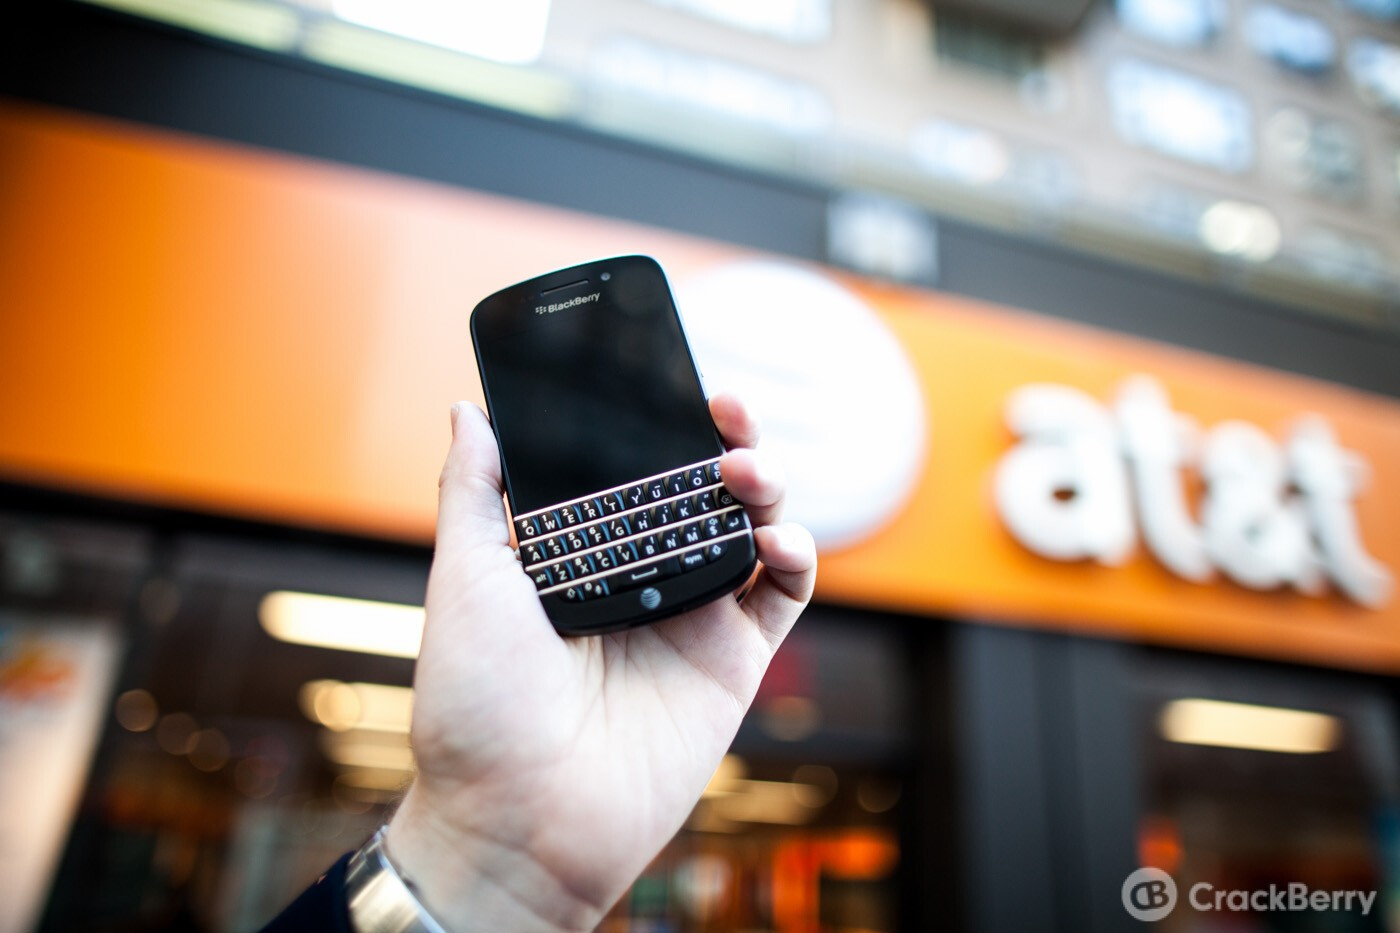 AT&T rolls out unlimited international messaging for texts, pictures, and video